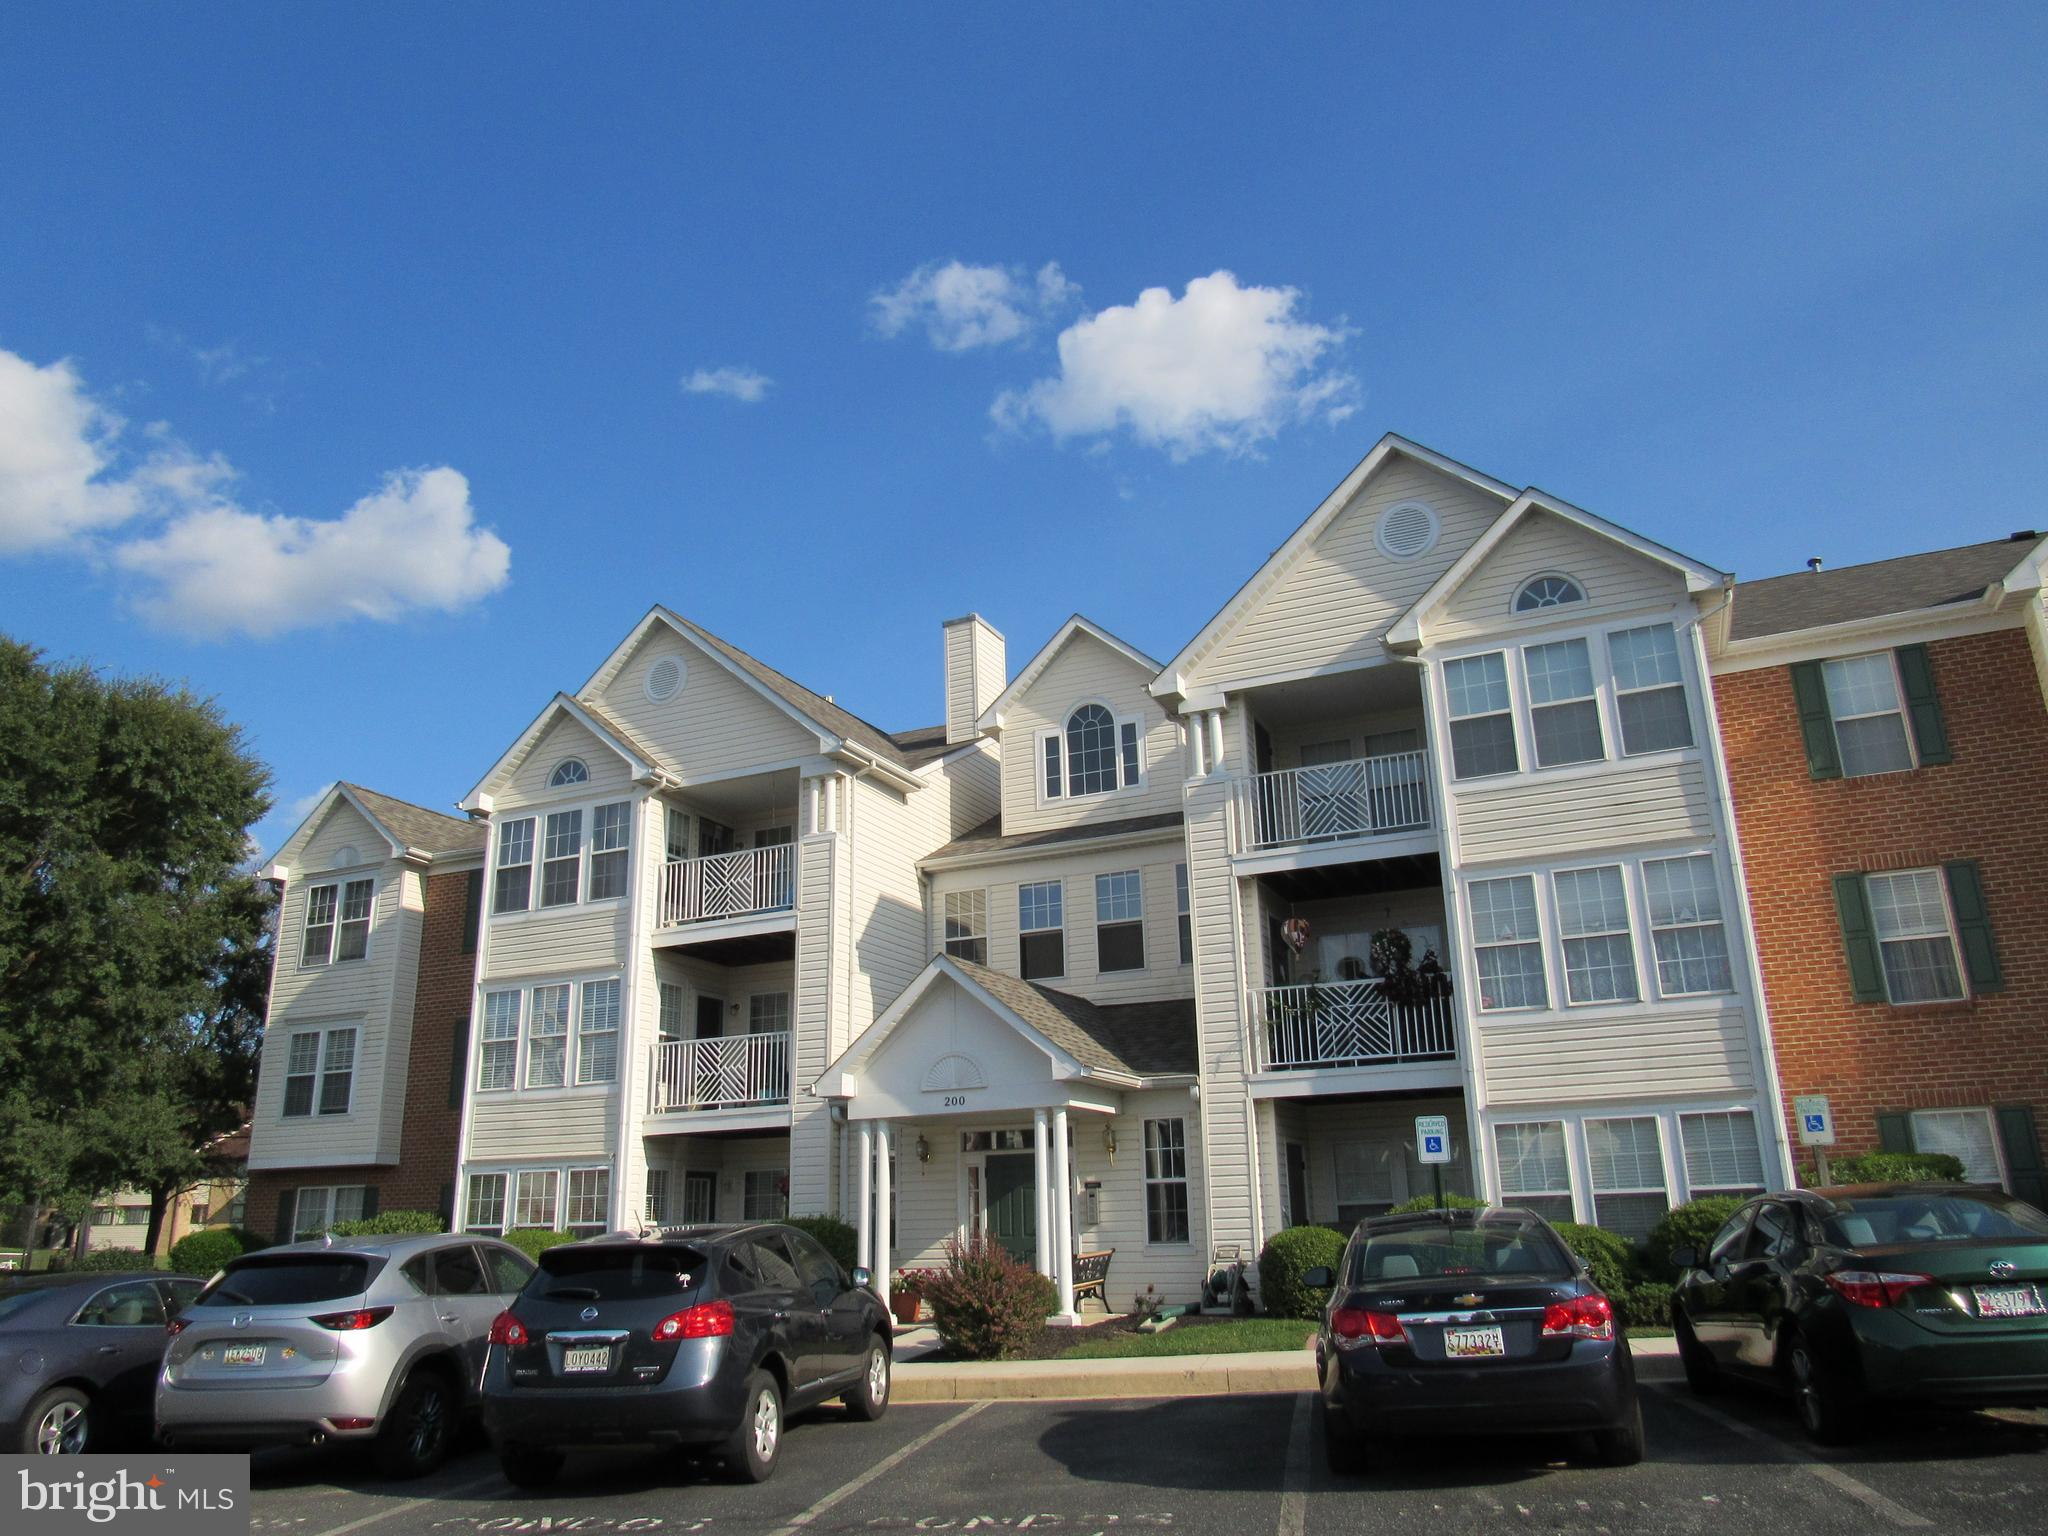 HOME SWEET HOME! Move in ready condo with 2 bedrooms & 2 full bathrooms . The wide open floor plan a